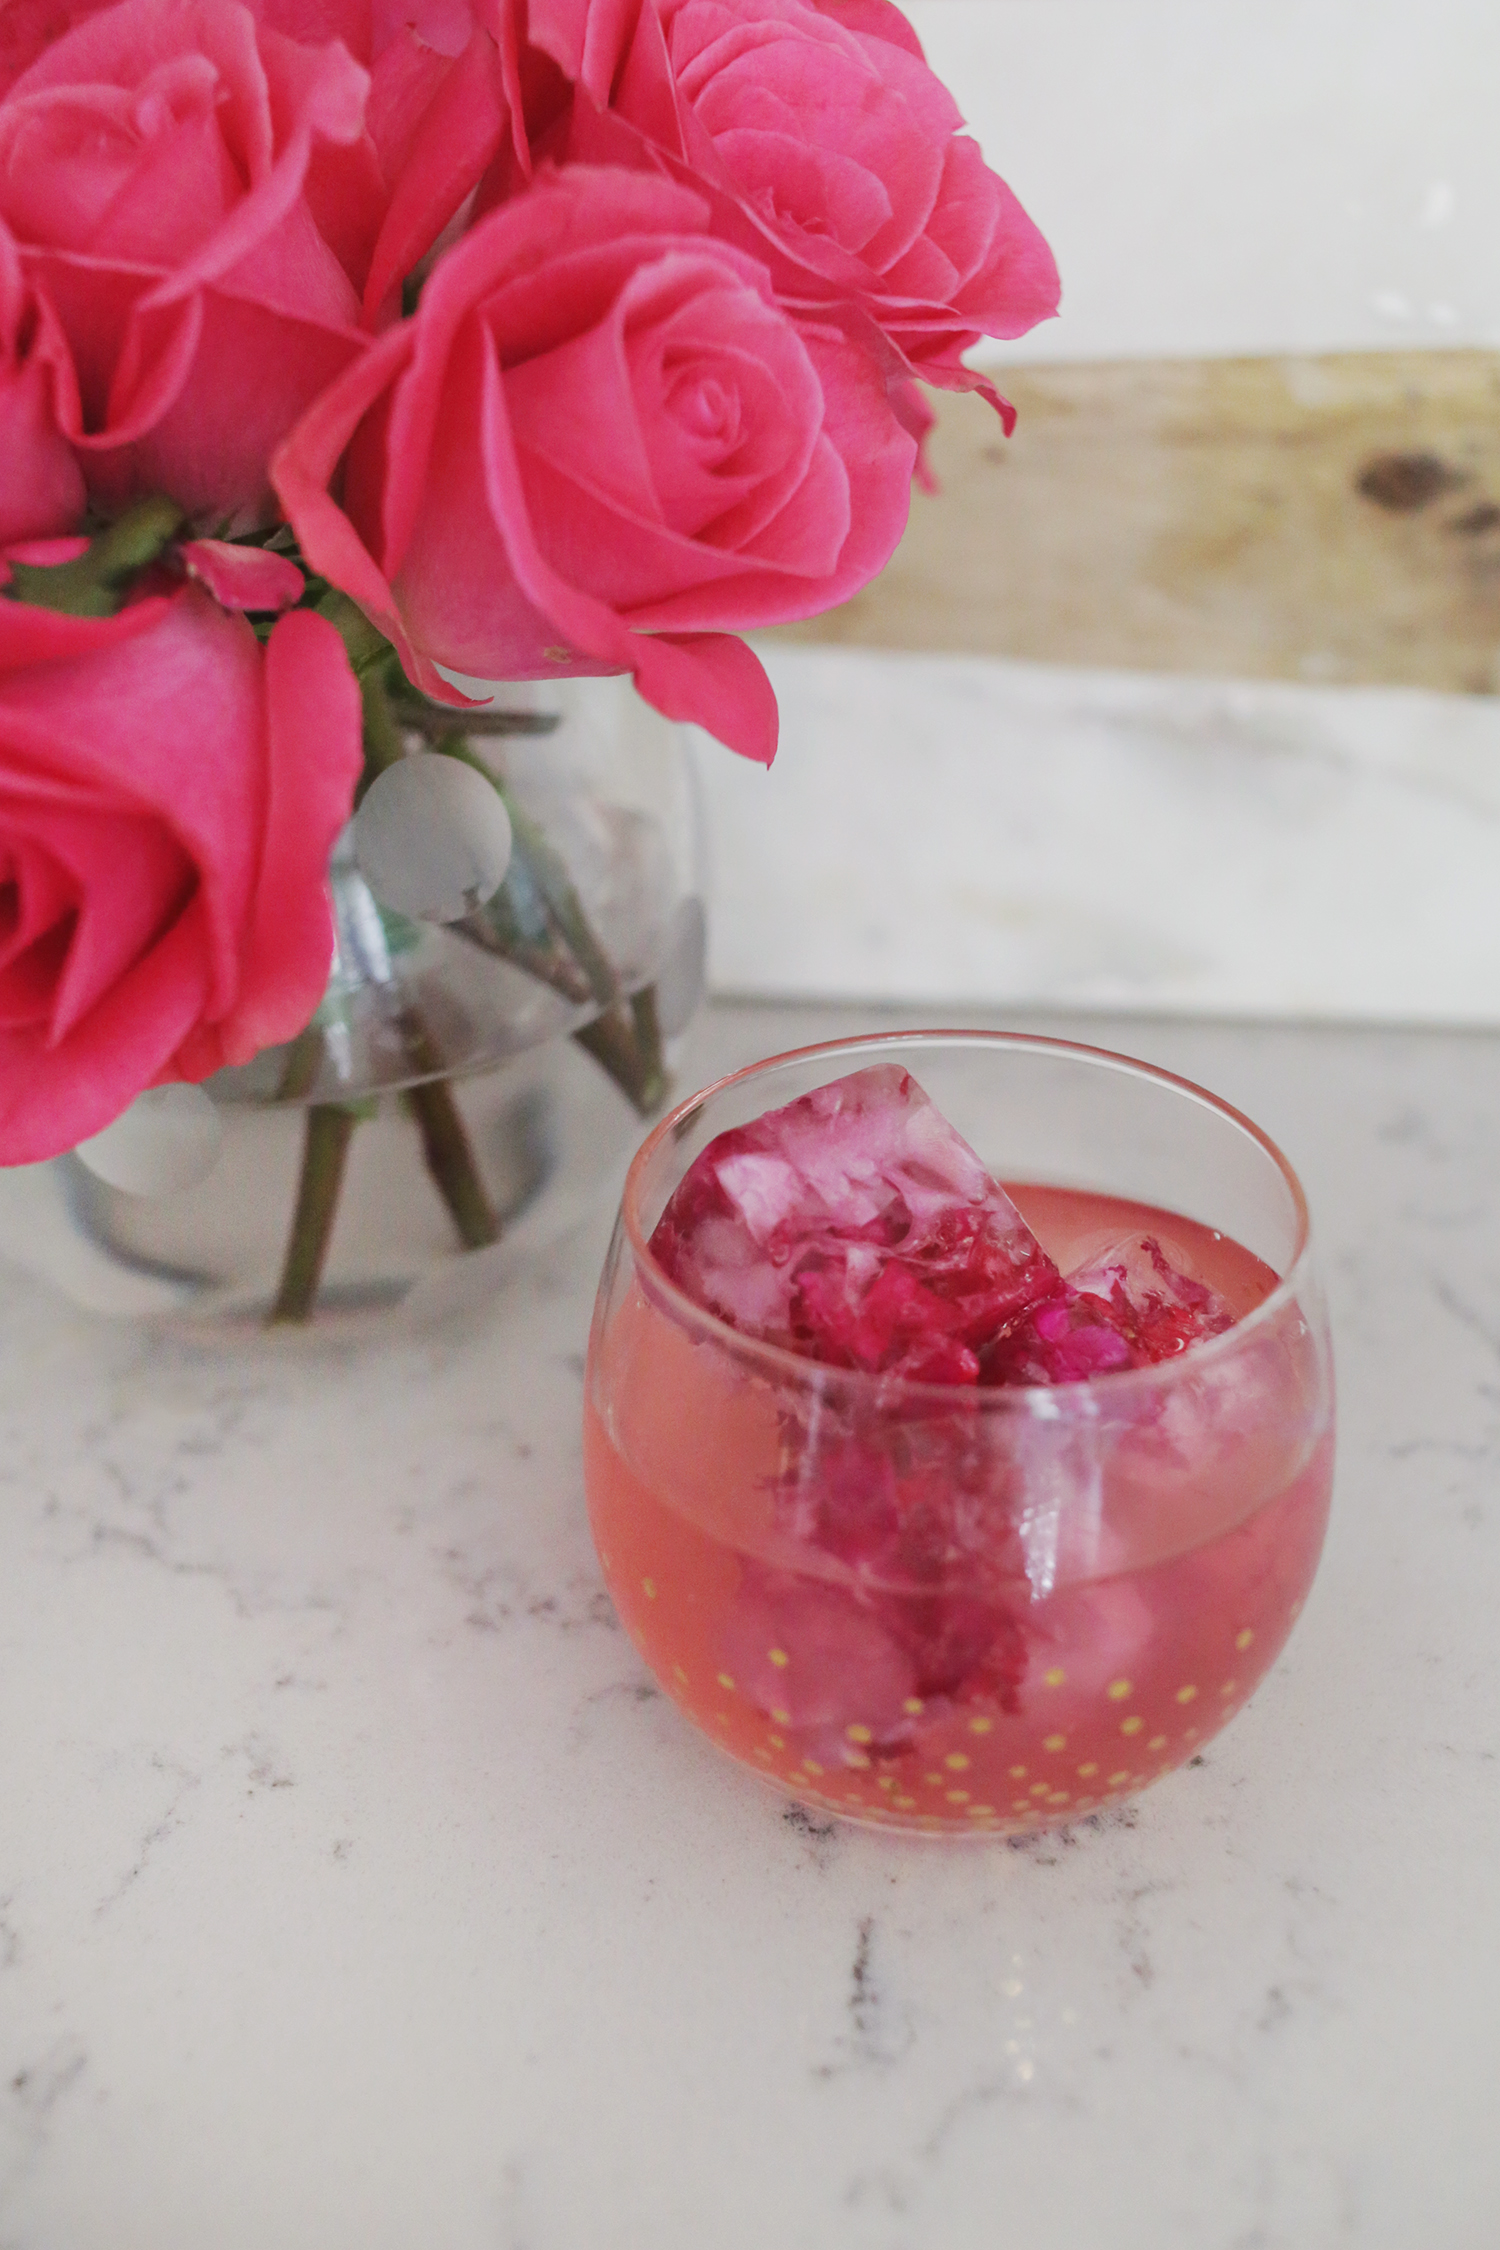 How to make floral ice cubes